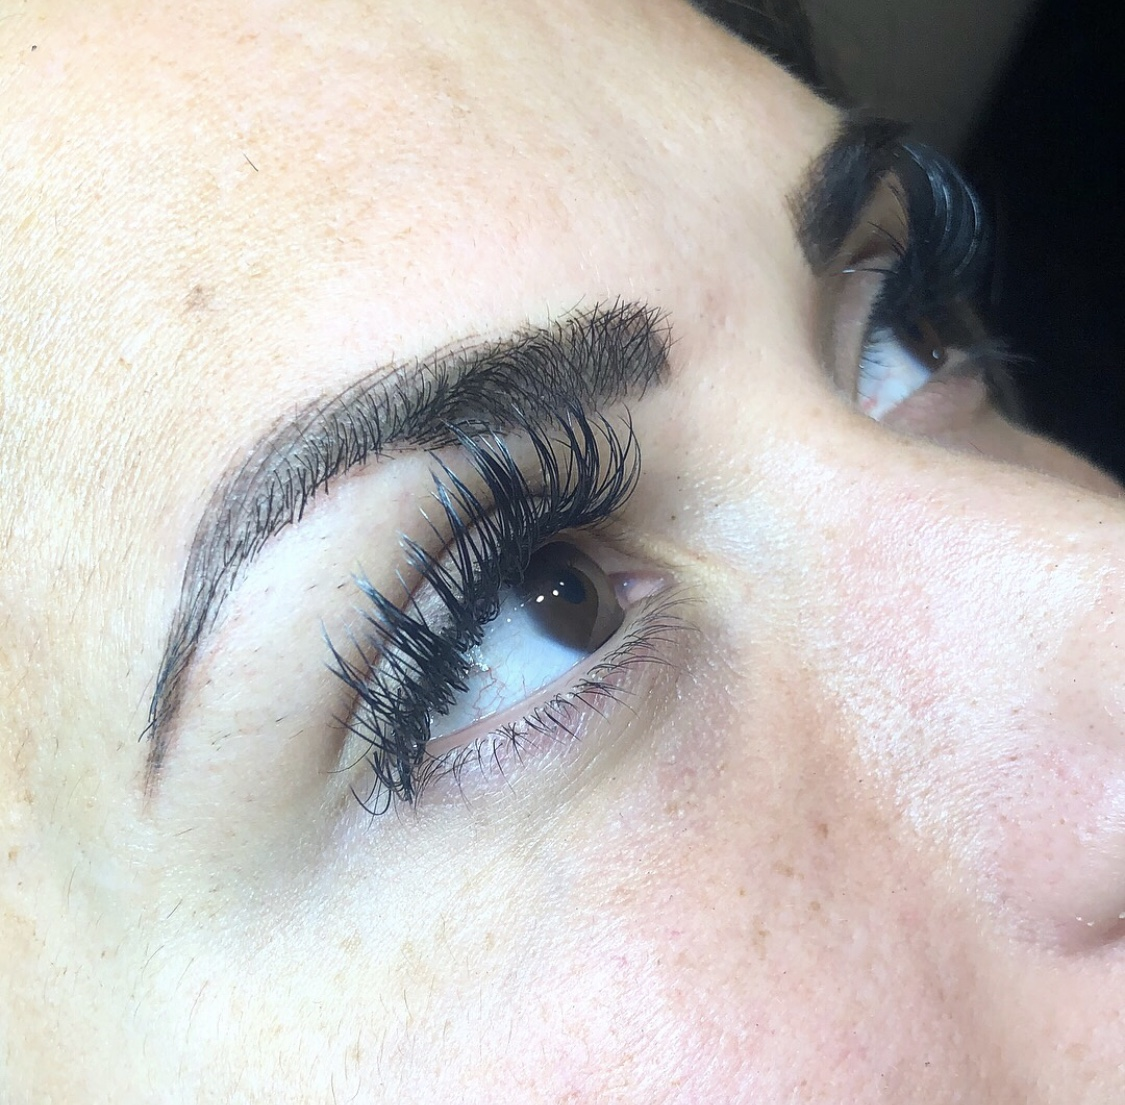 tulsa microbladed eyebrows, emily gemma microbladed eyebrows, microblading reviews, dallas microblading